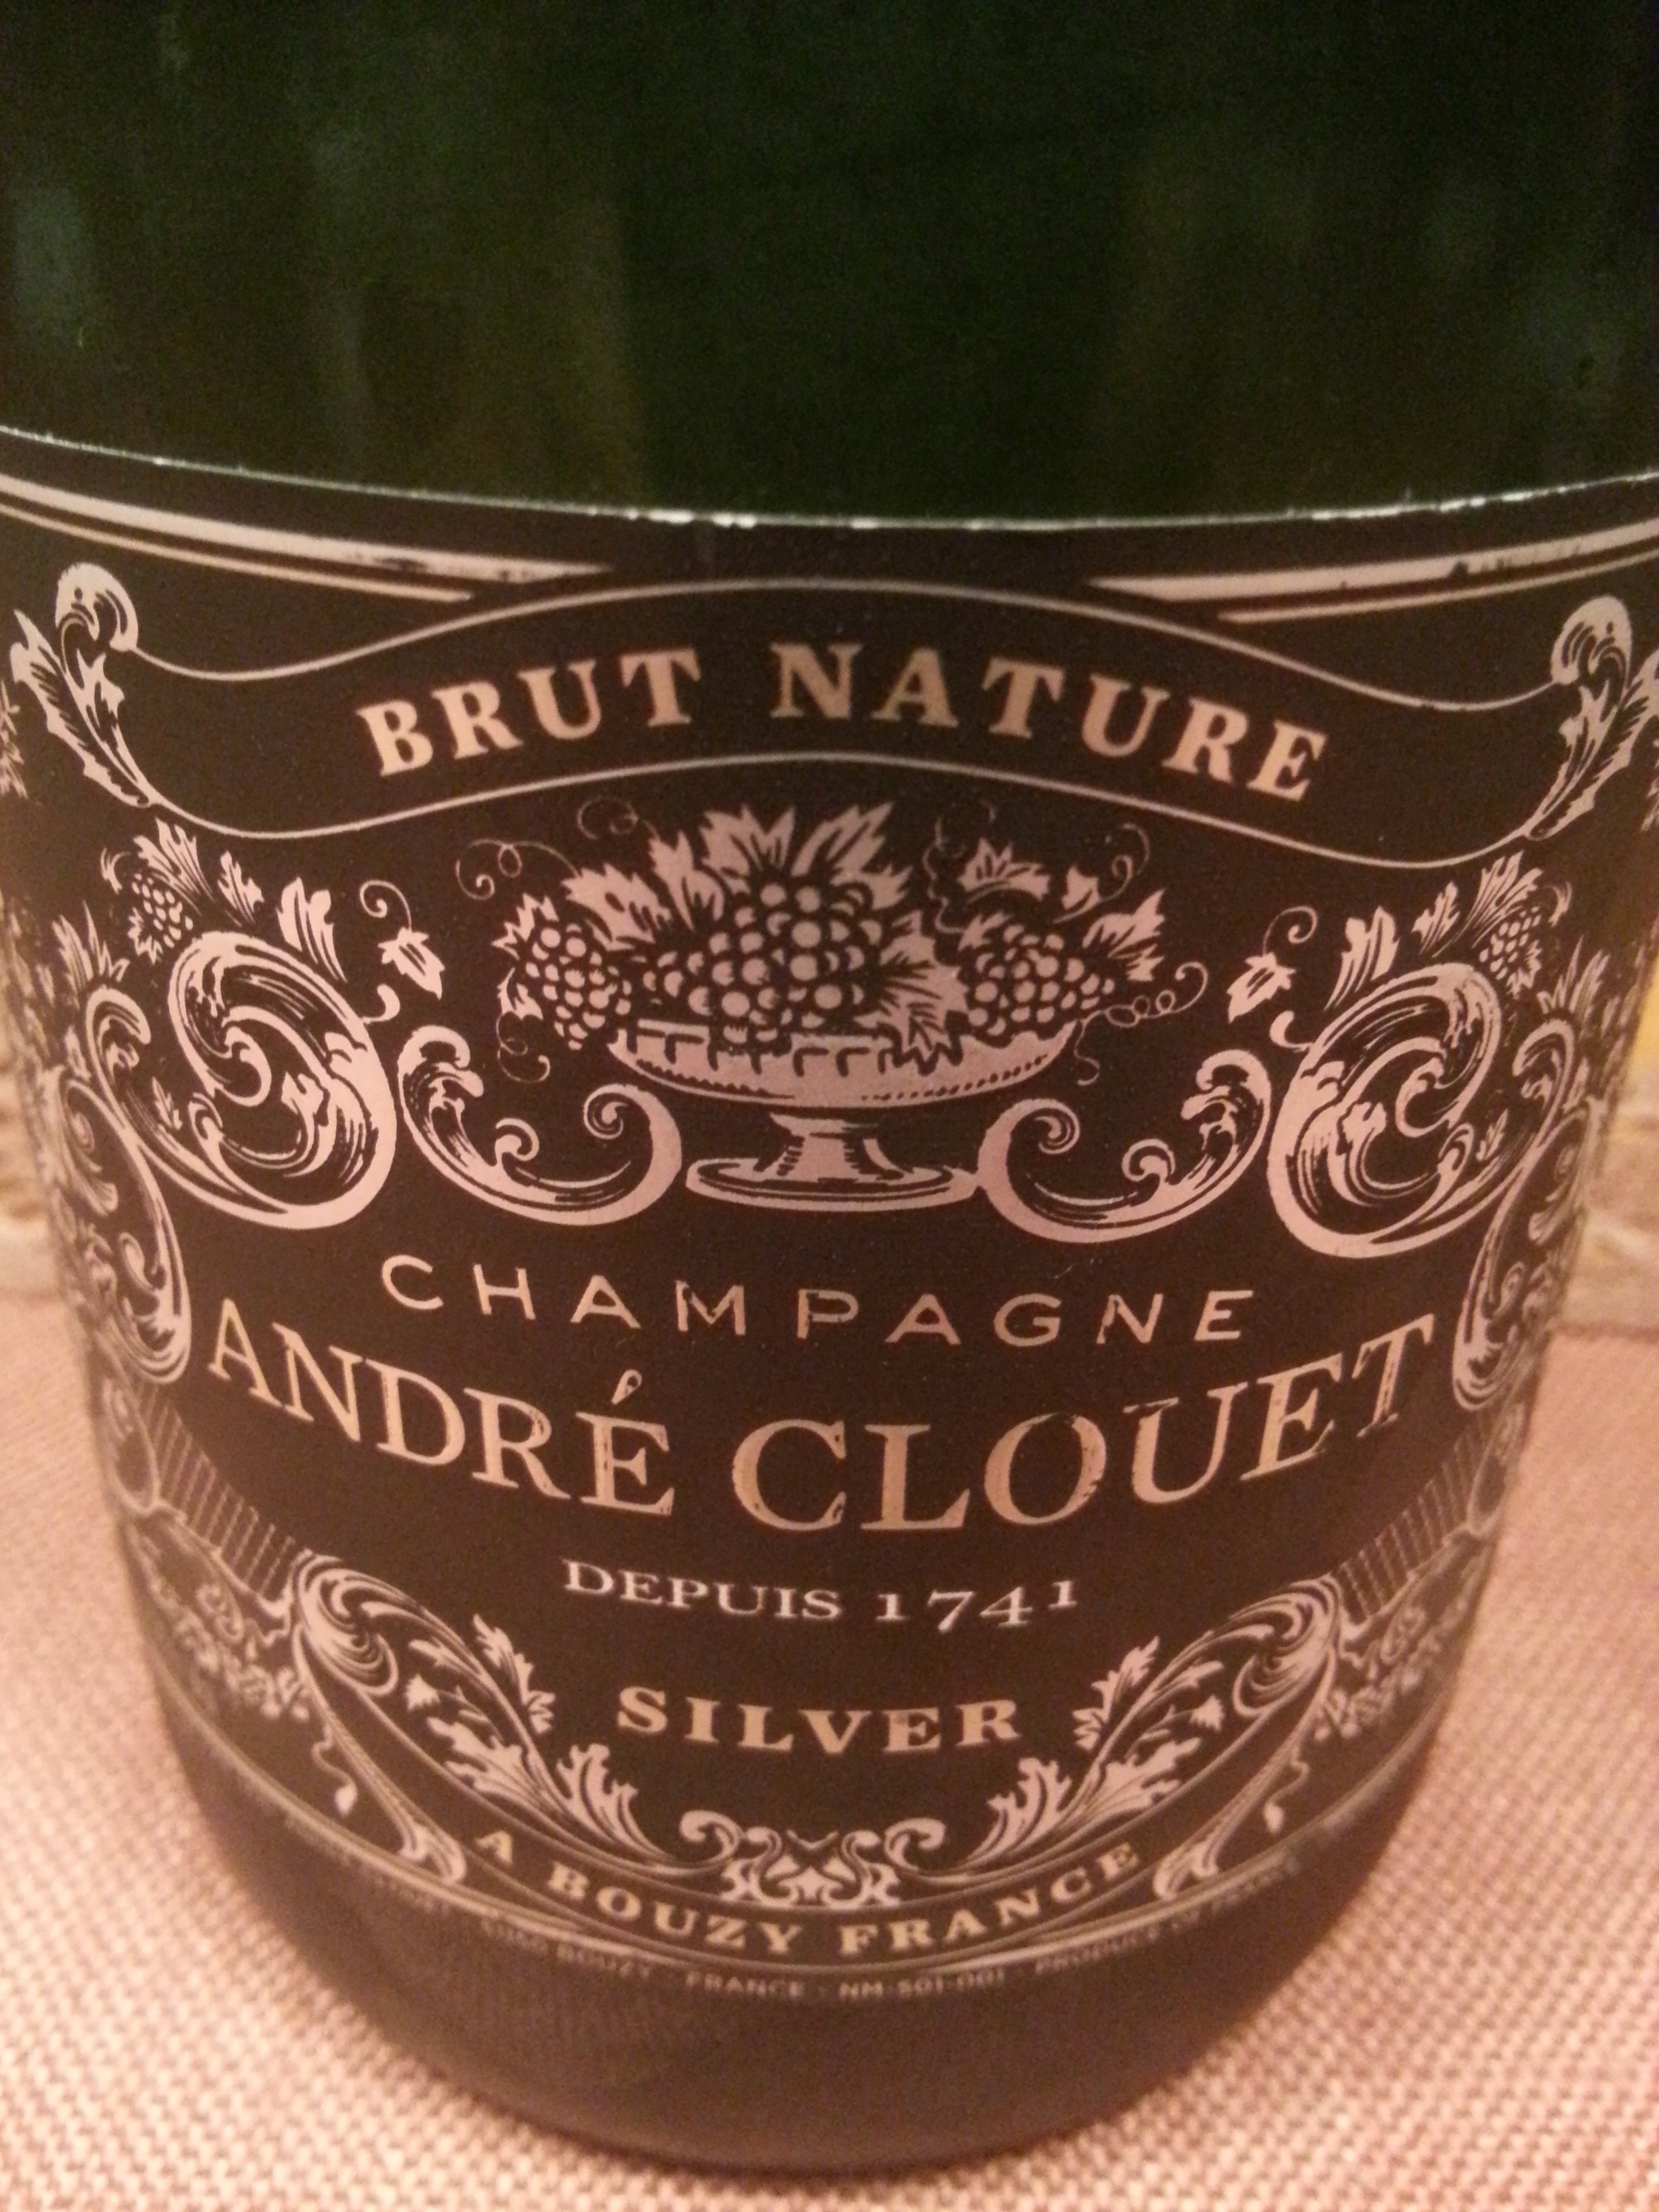 -nv- Champagne Brut Nature | Clouet